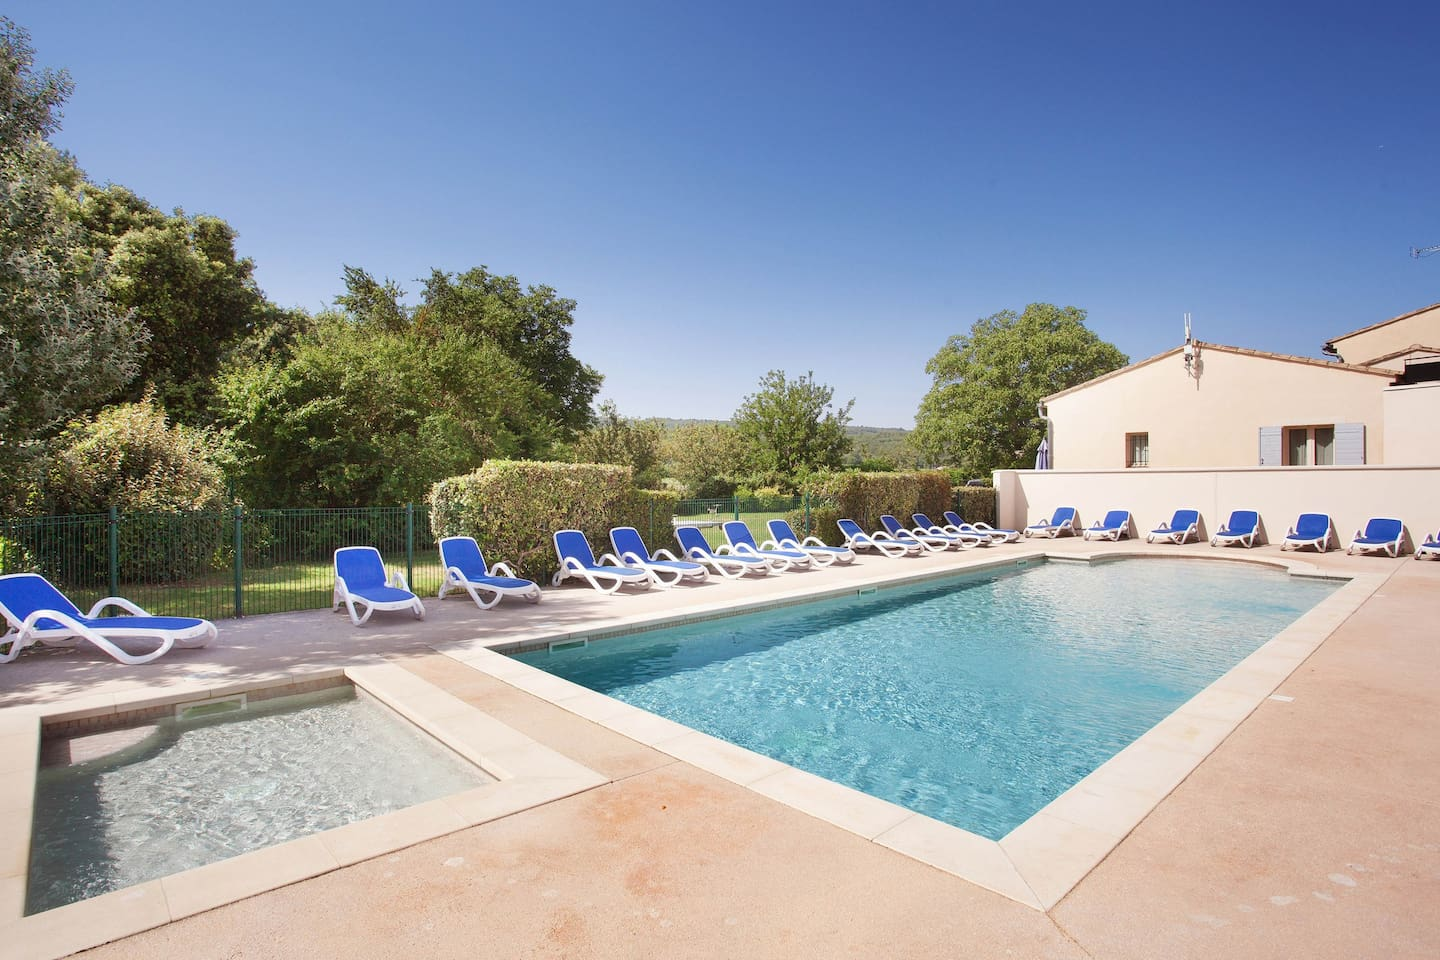 On a hot summer day, lounge by the pool and take in the beautiful sun.